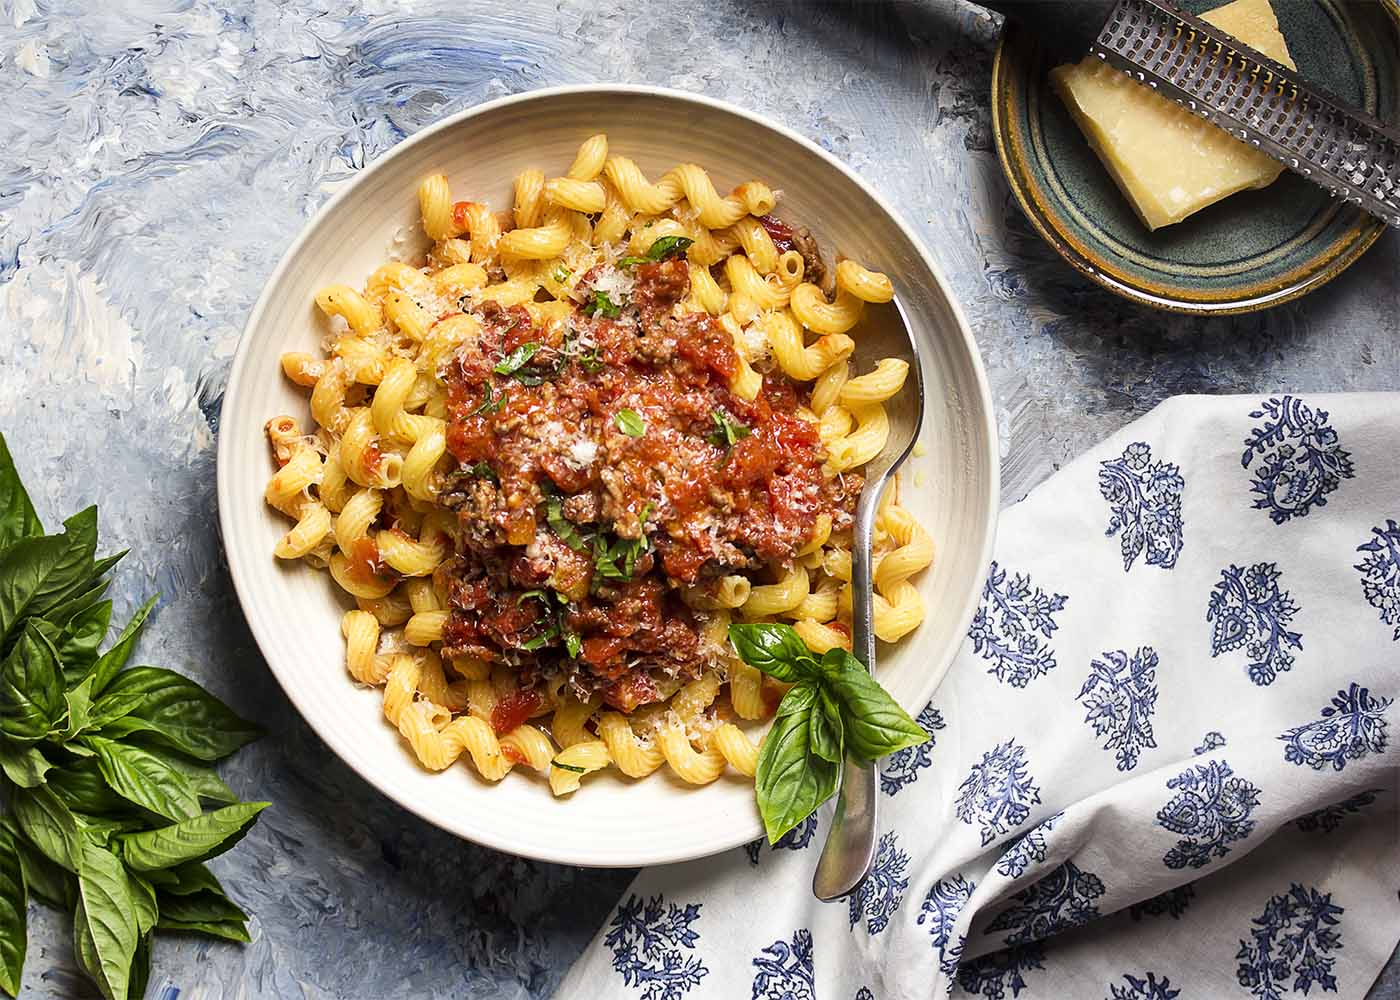 Top view of a bowl of pasta toppped with meat sauce and sliced basil.